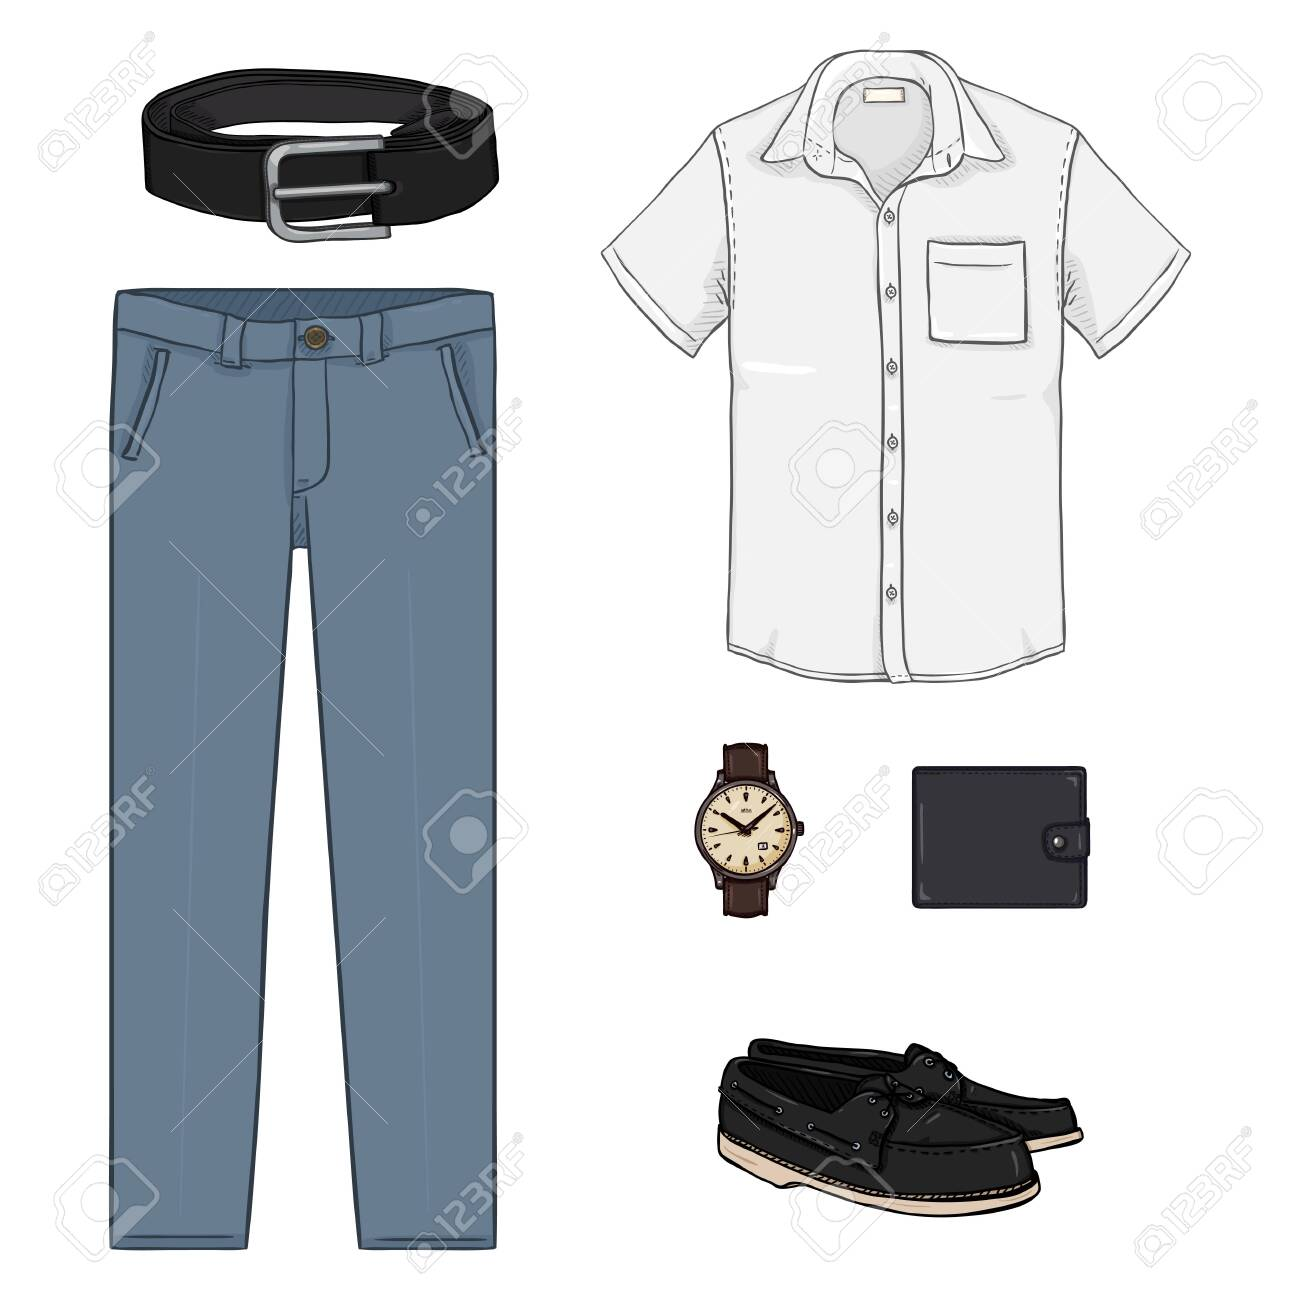 Dress Code Smart Casual Stock Illustrations – 112 Dress Code Smart Casual  Stock Illustrations, Vectors & Clipart - Dreamstime